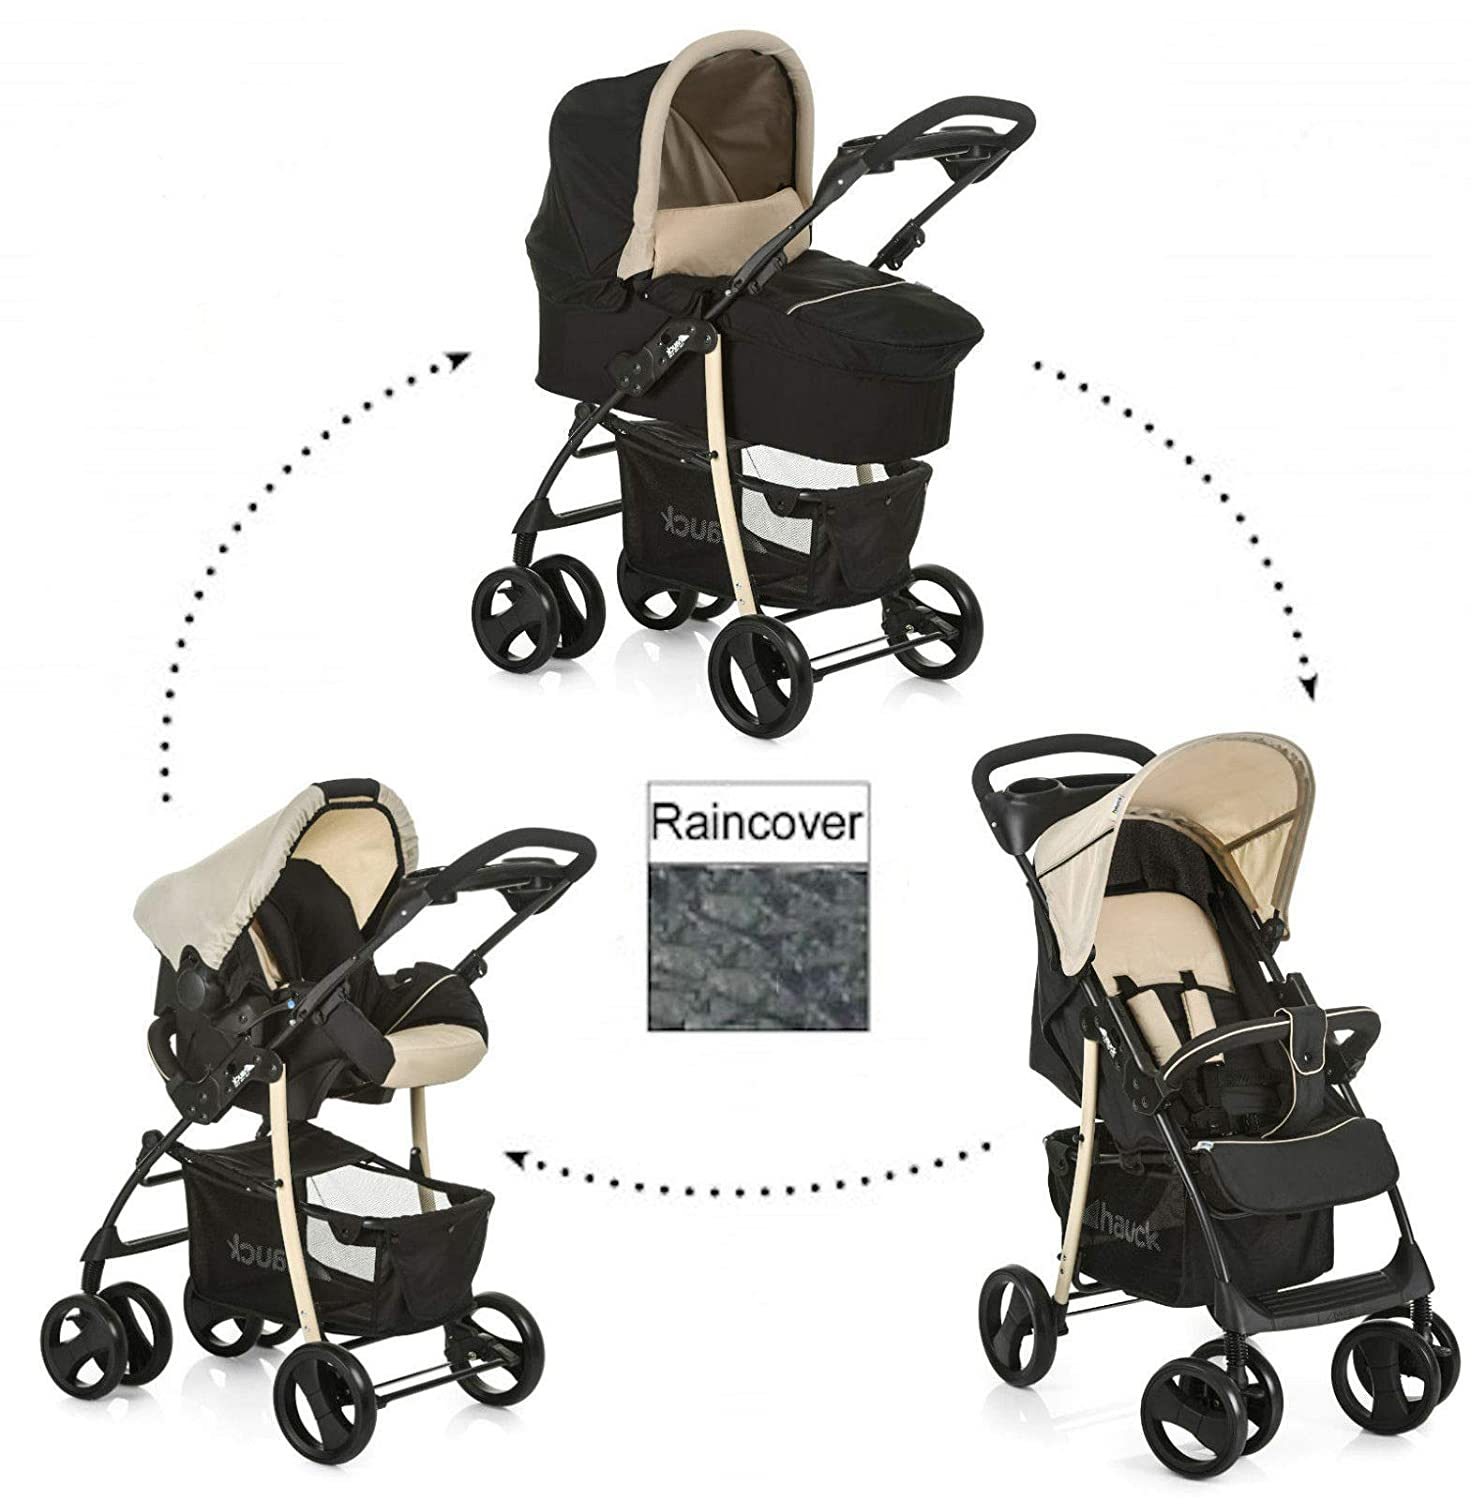 1-2 Working Days for delivery New Hauck Shopper SLX Trio 3in1 Set in Beige Caviar//Black,Including carrycot,Pushchair, car seat/&raincover